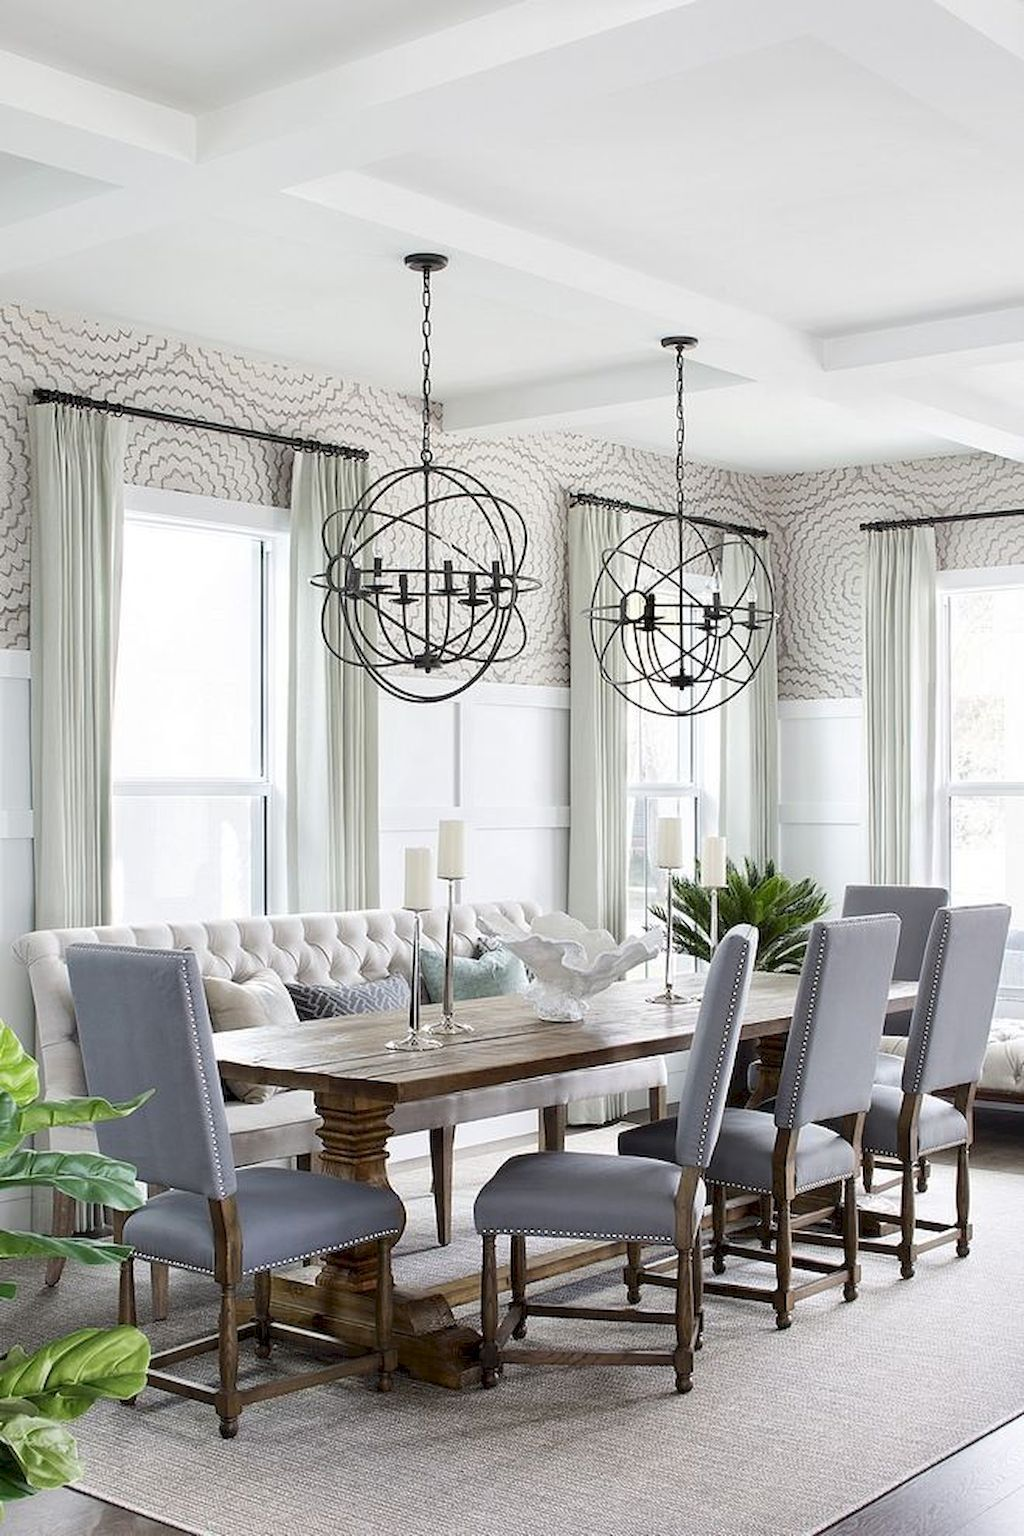 15 Dining Room Decorating Ideas: Cottage Dining Room Part 15